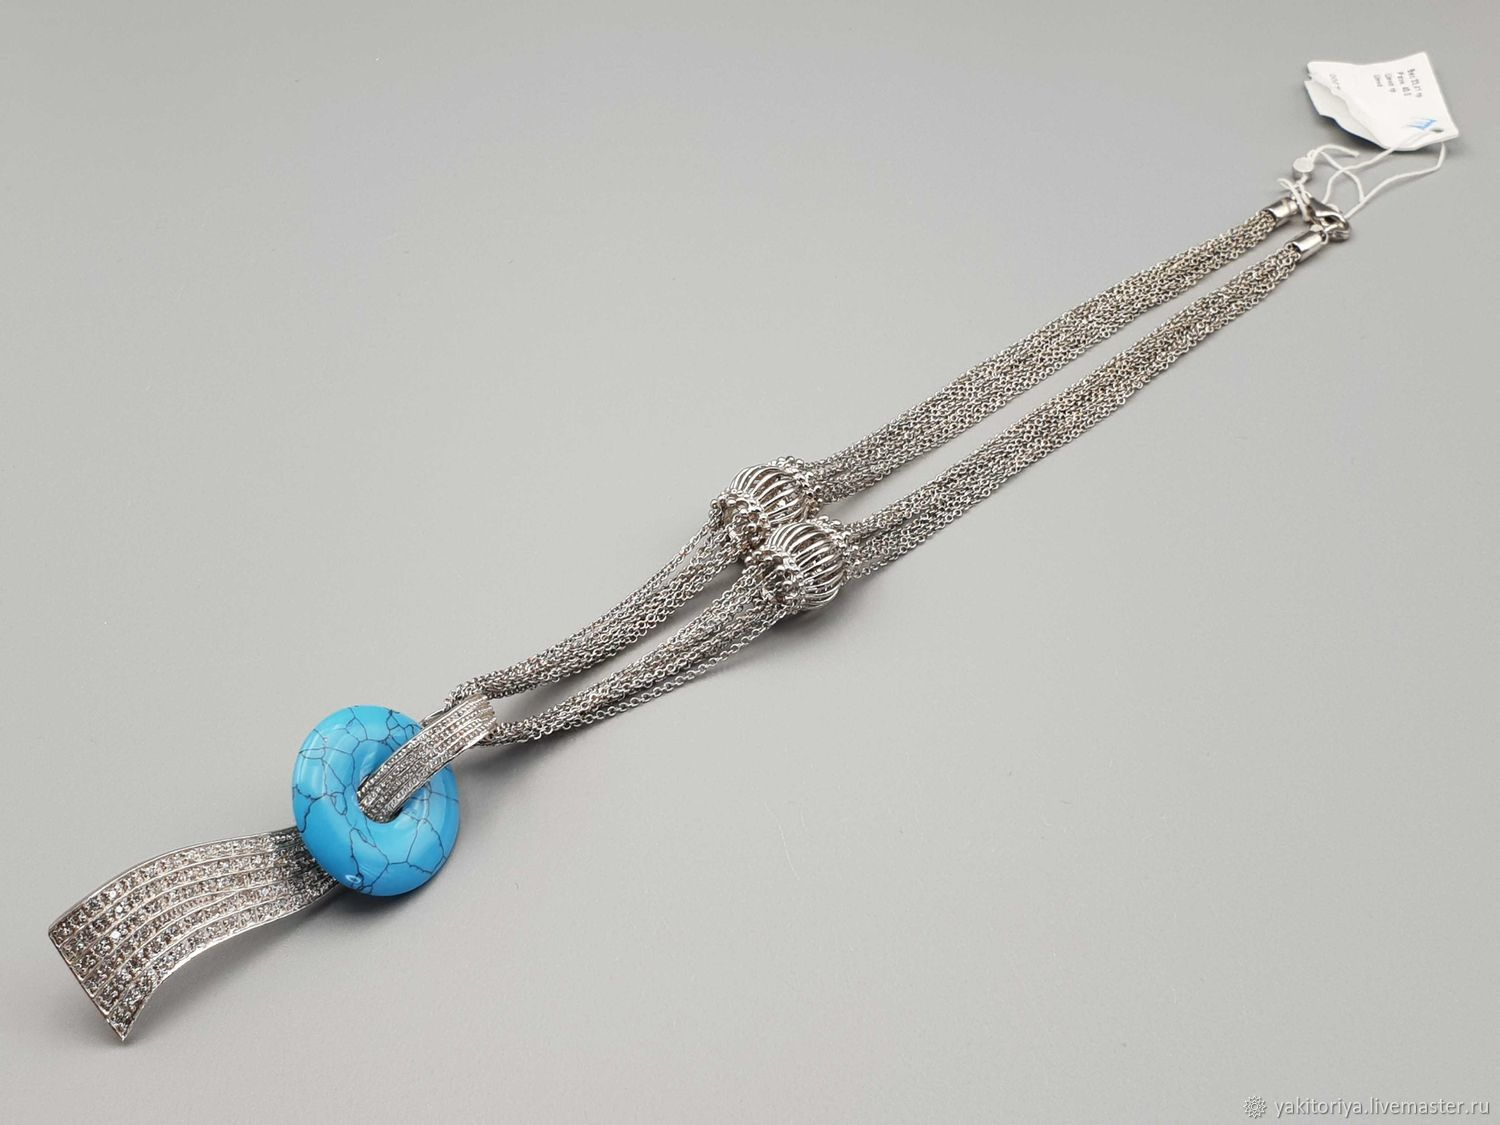 Silver necklace with turquoise and cubic zirconia, Necklace, Moscow,  Фото №1